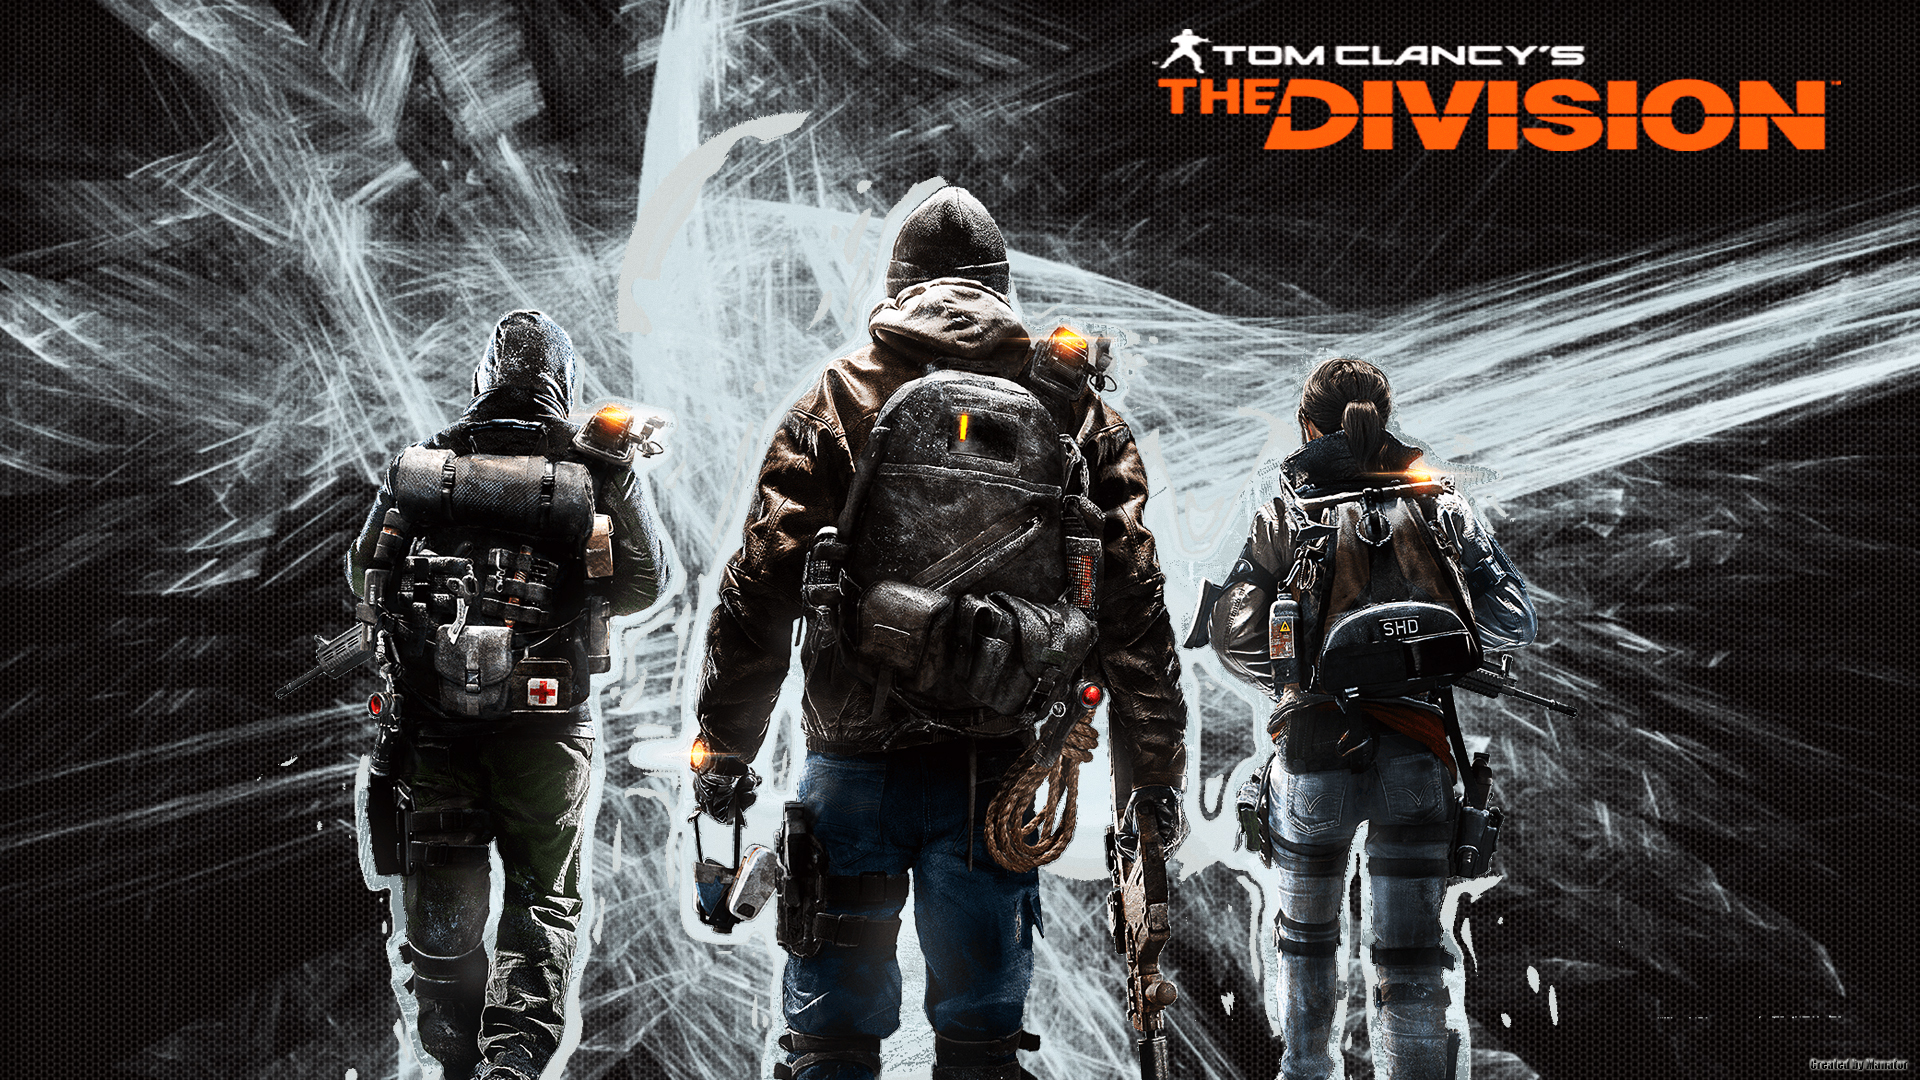 Tom Clancy's The Division Wallpapers High Resolution And